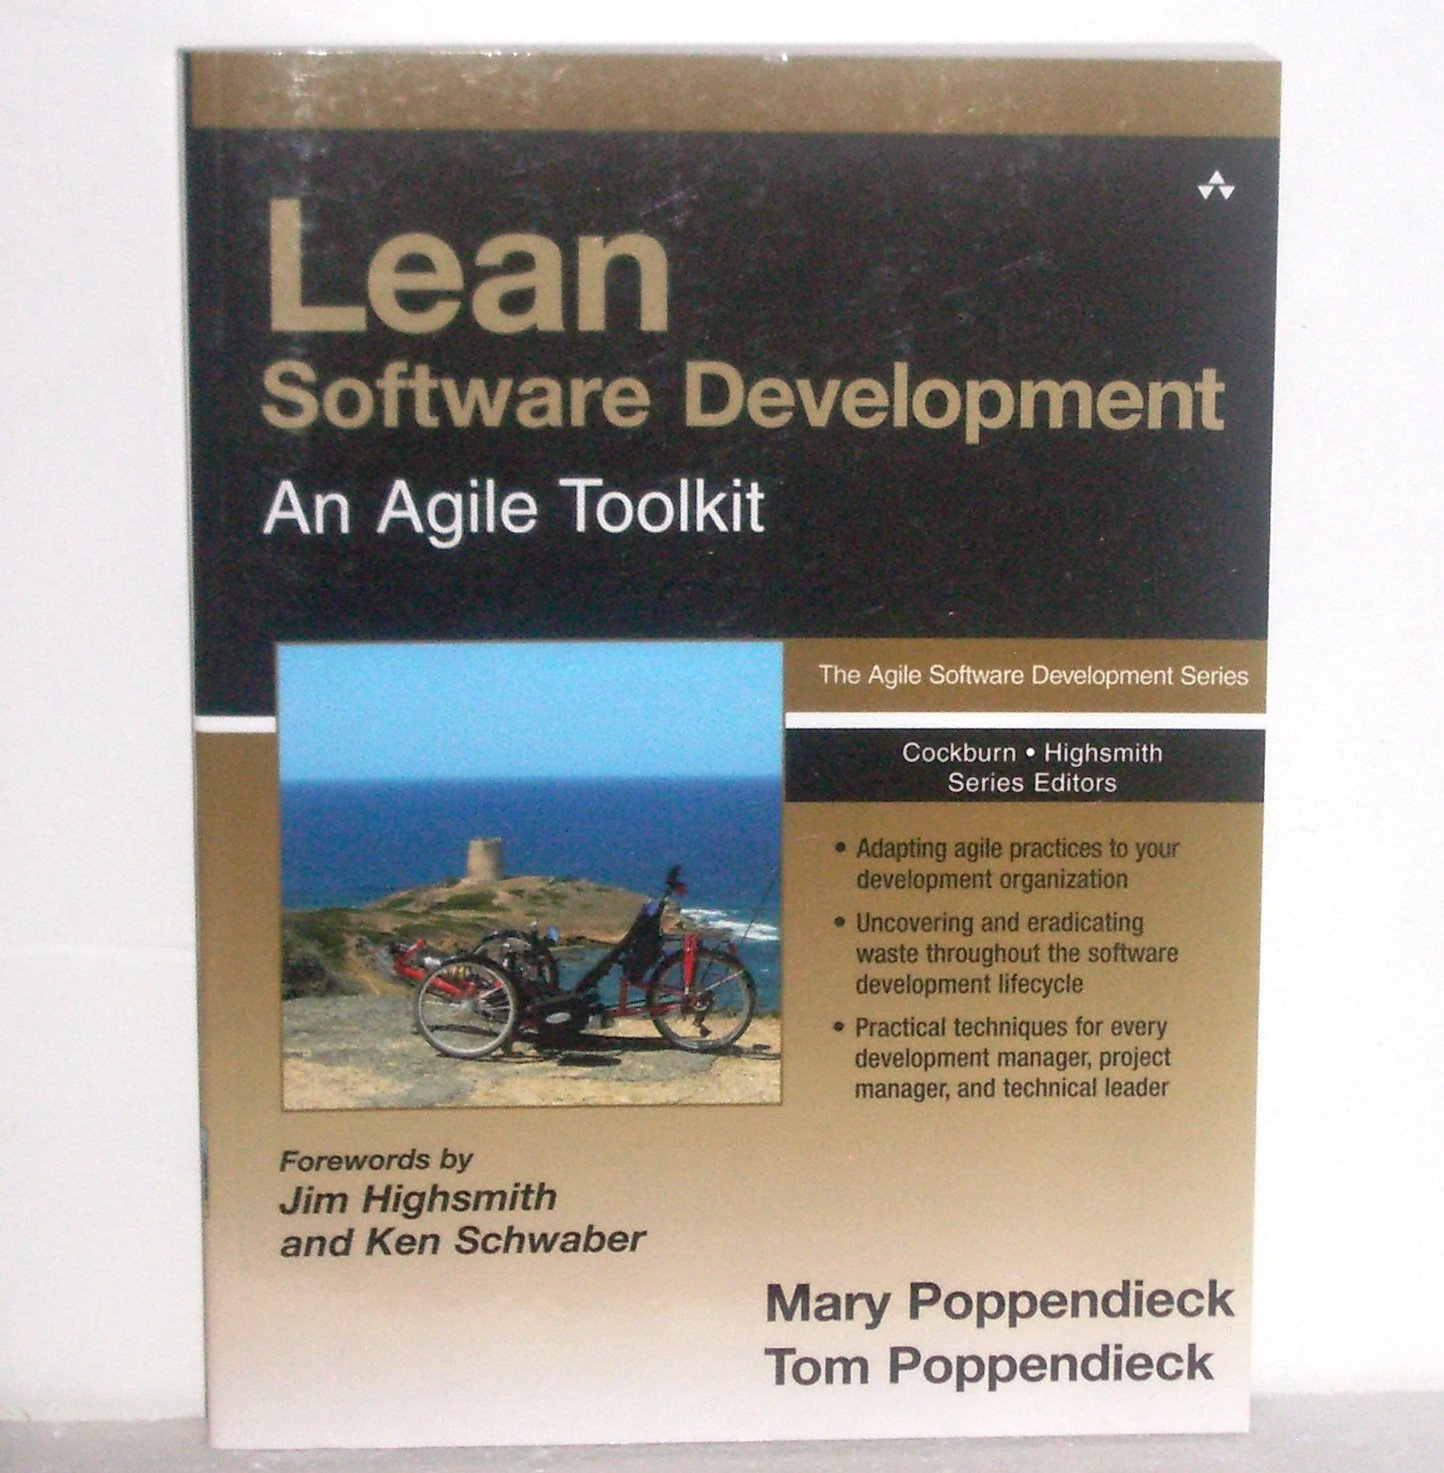 Lean Software Development by Mary Poppendieck, Tom Poppendieck An Agile Toolkit 2003